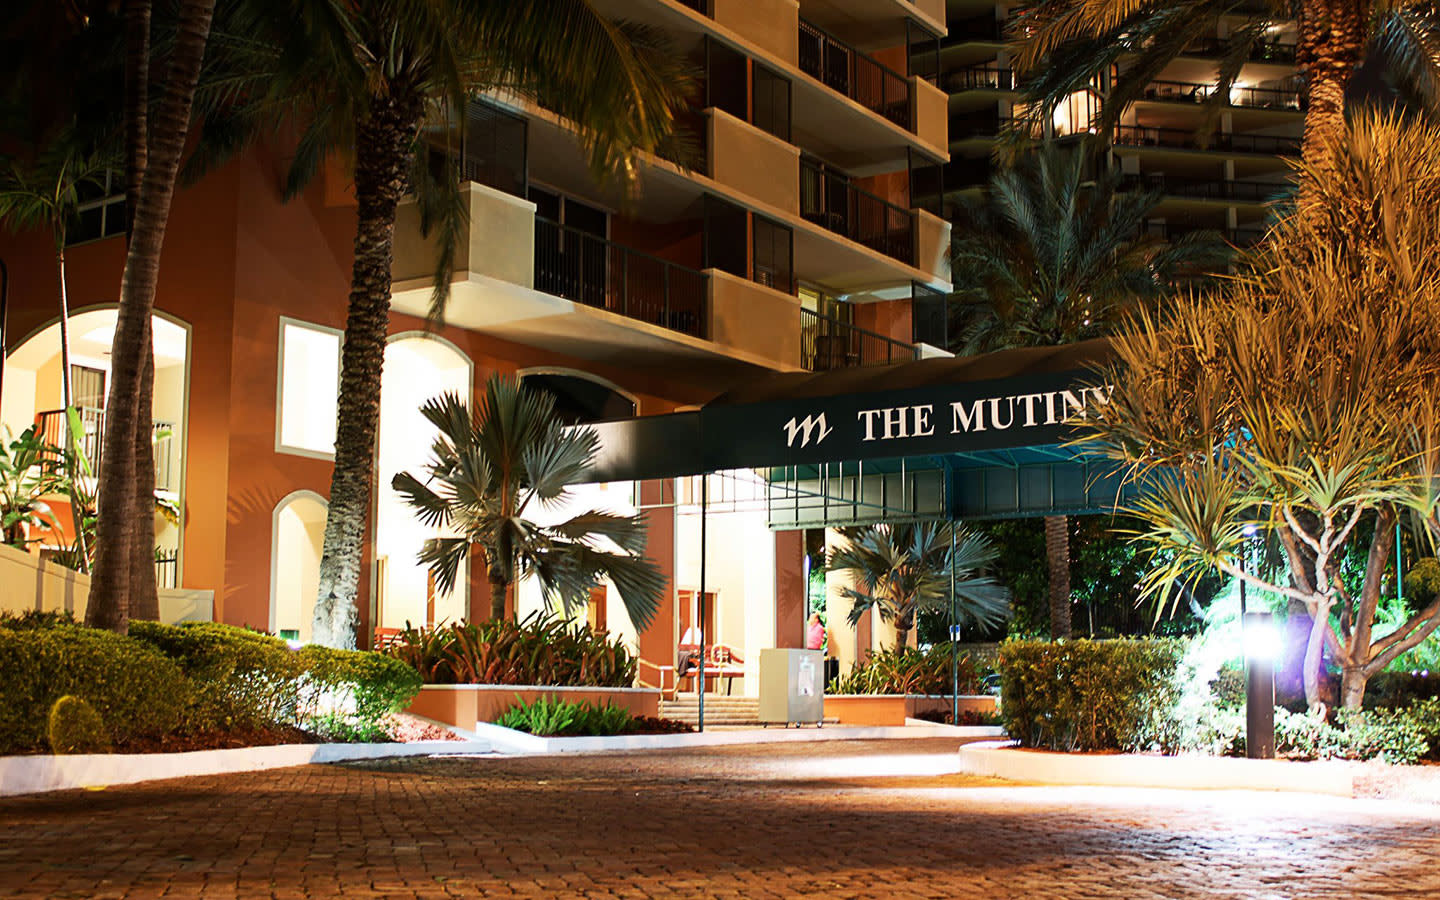 The Mutiny Hotel - Miami and The Beaches